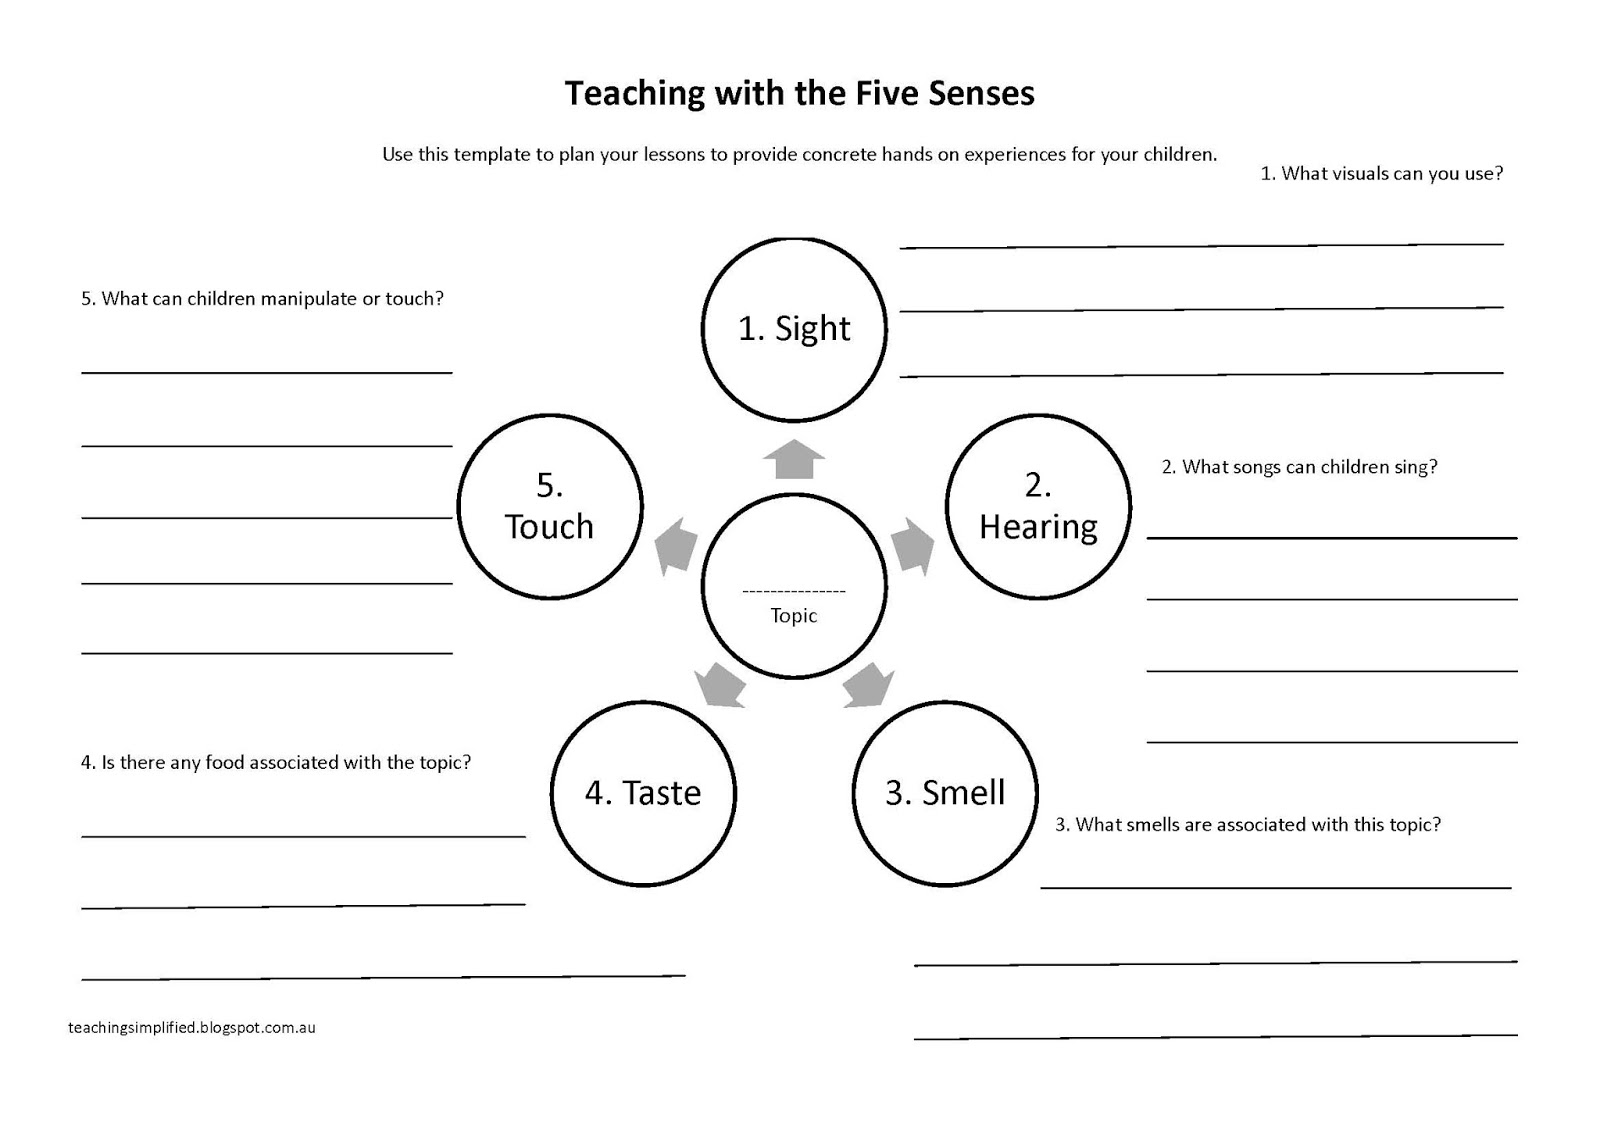 worksheet Free Printables For Teachers teaching simplified free printable download with the five senses planner